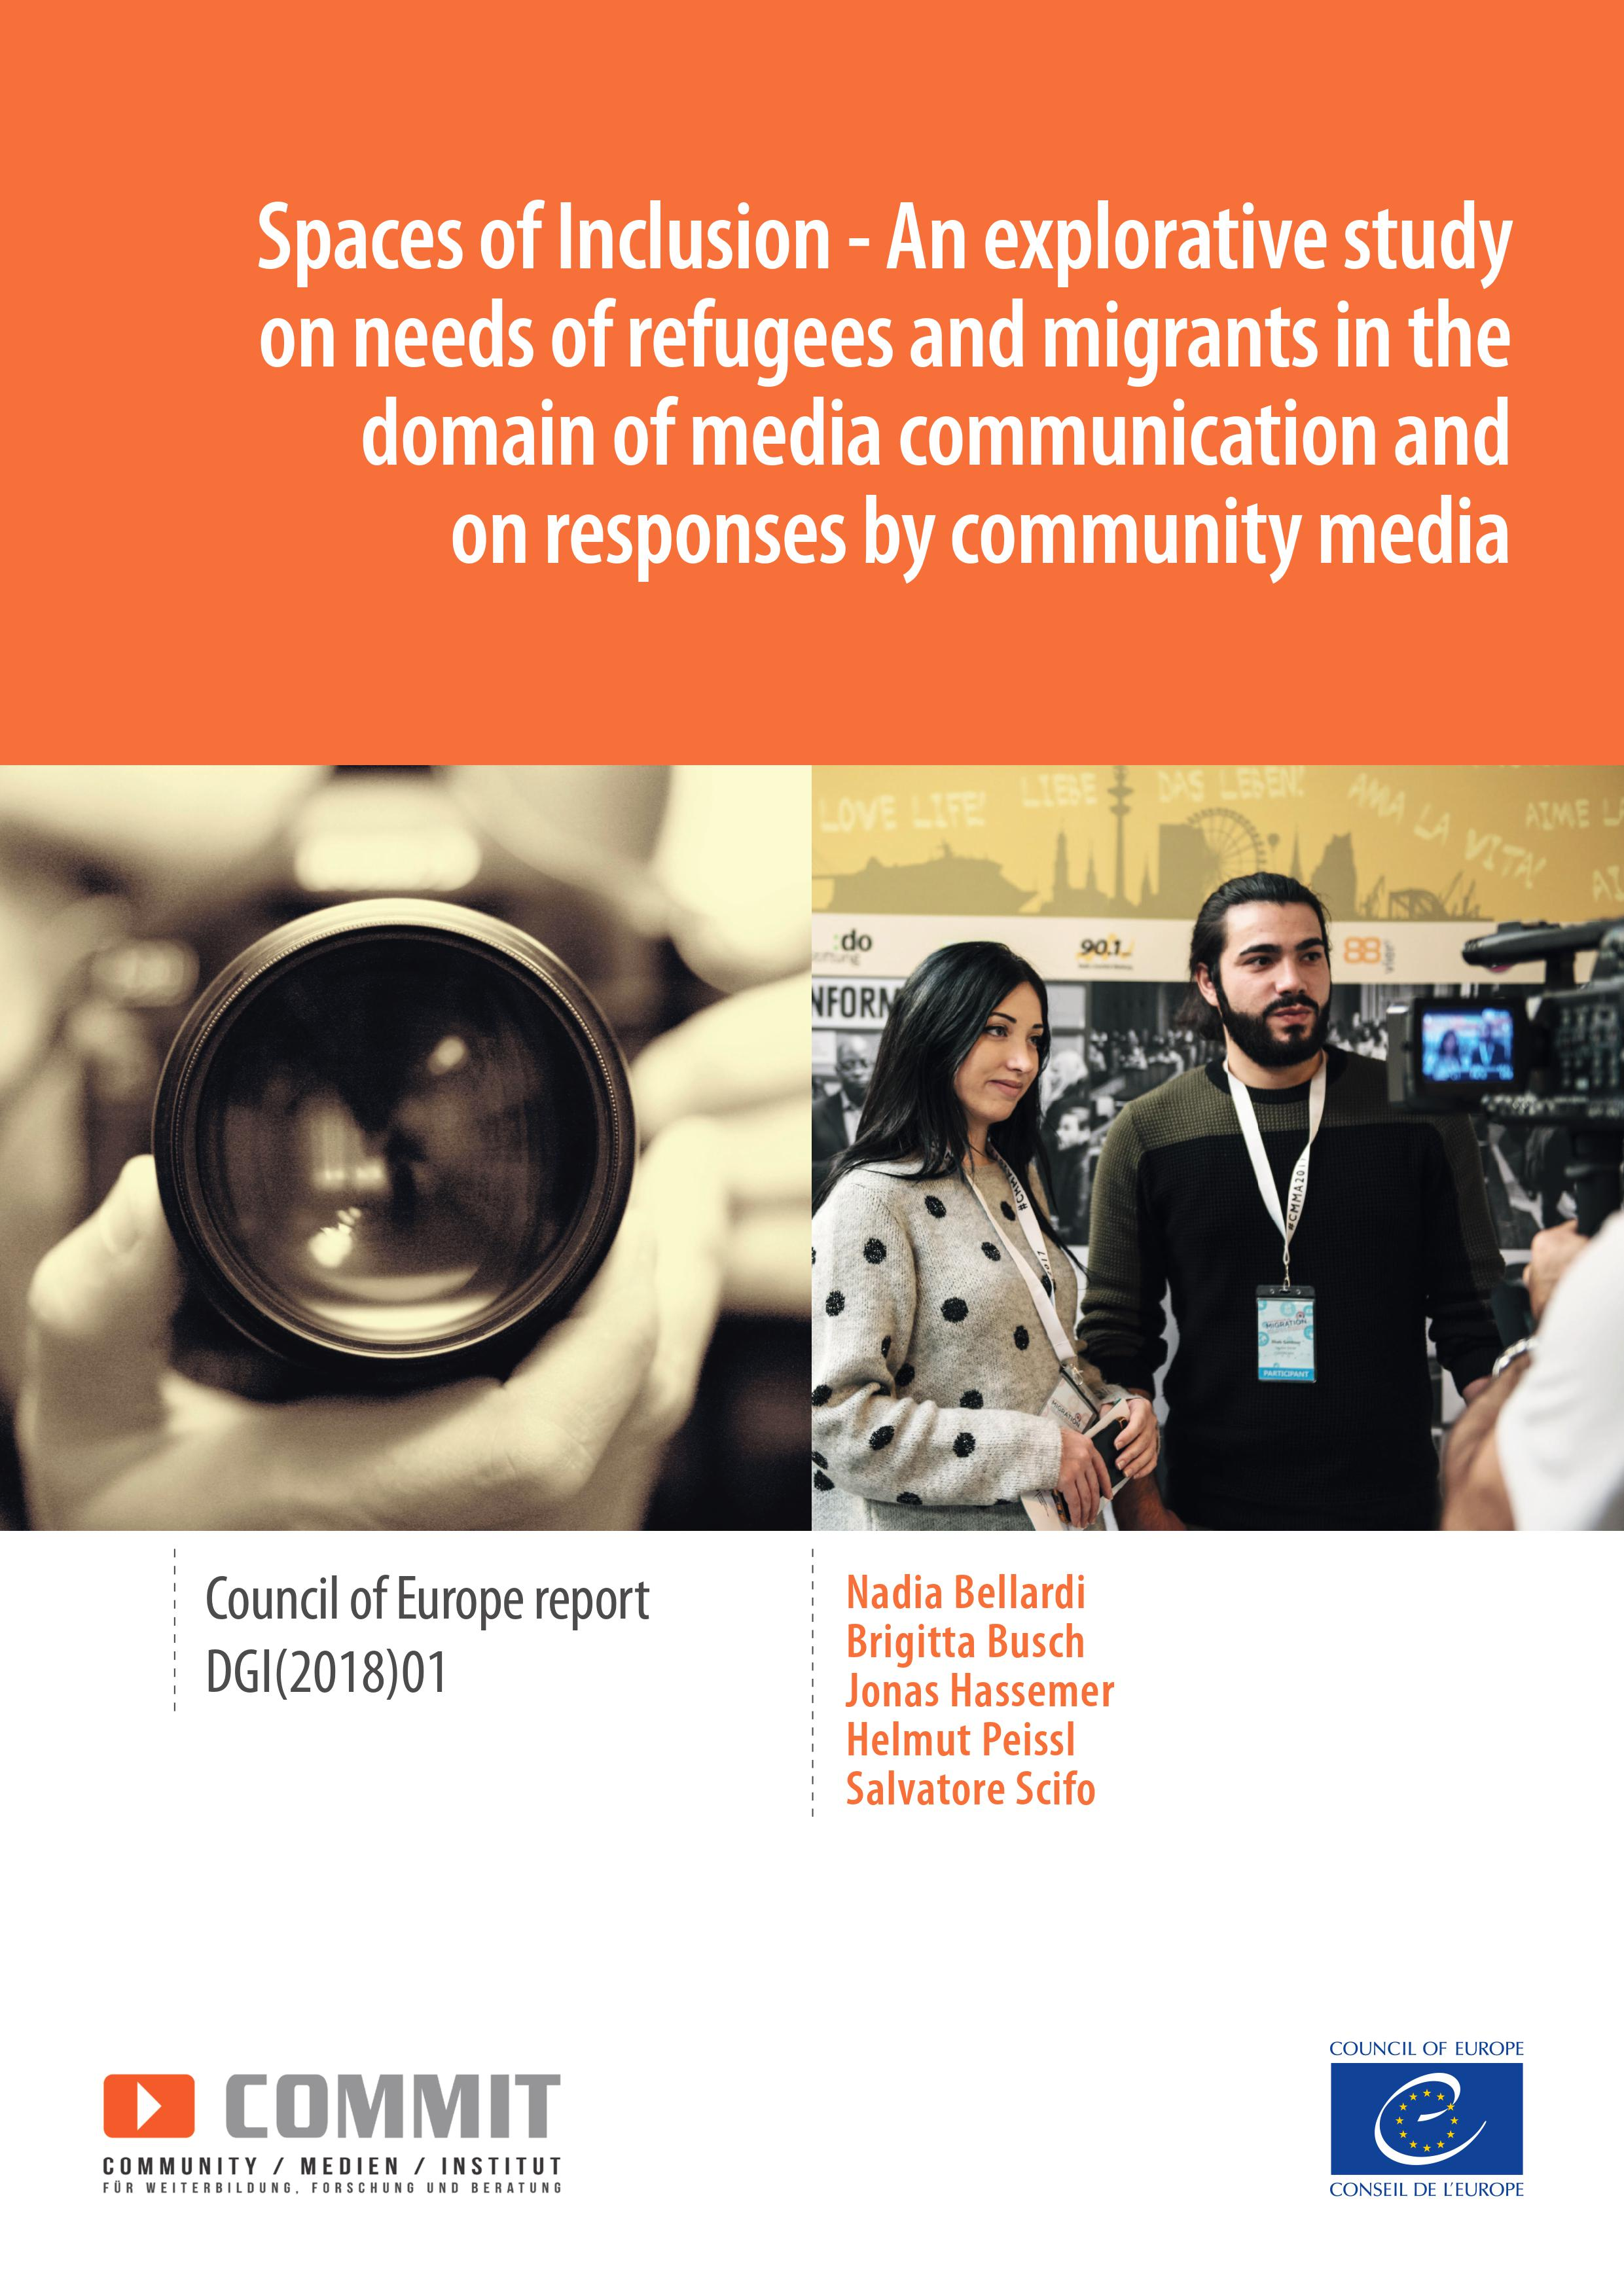 « Spaces of Inclusion - Needs of refugees and migrants in the domain of media communication and on responses by community media » (2018)